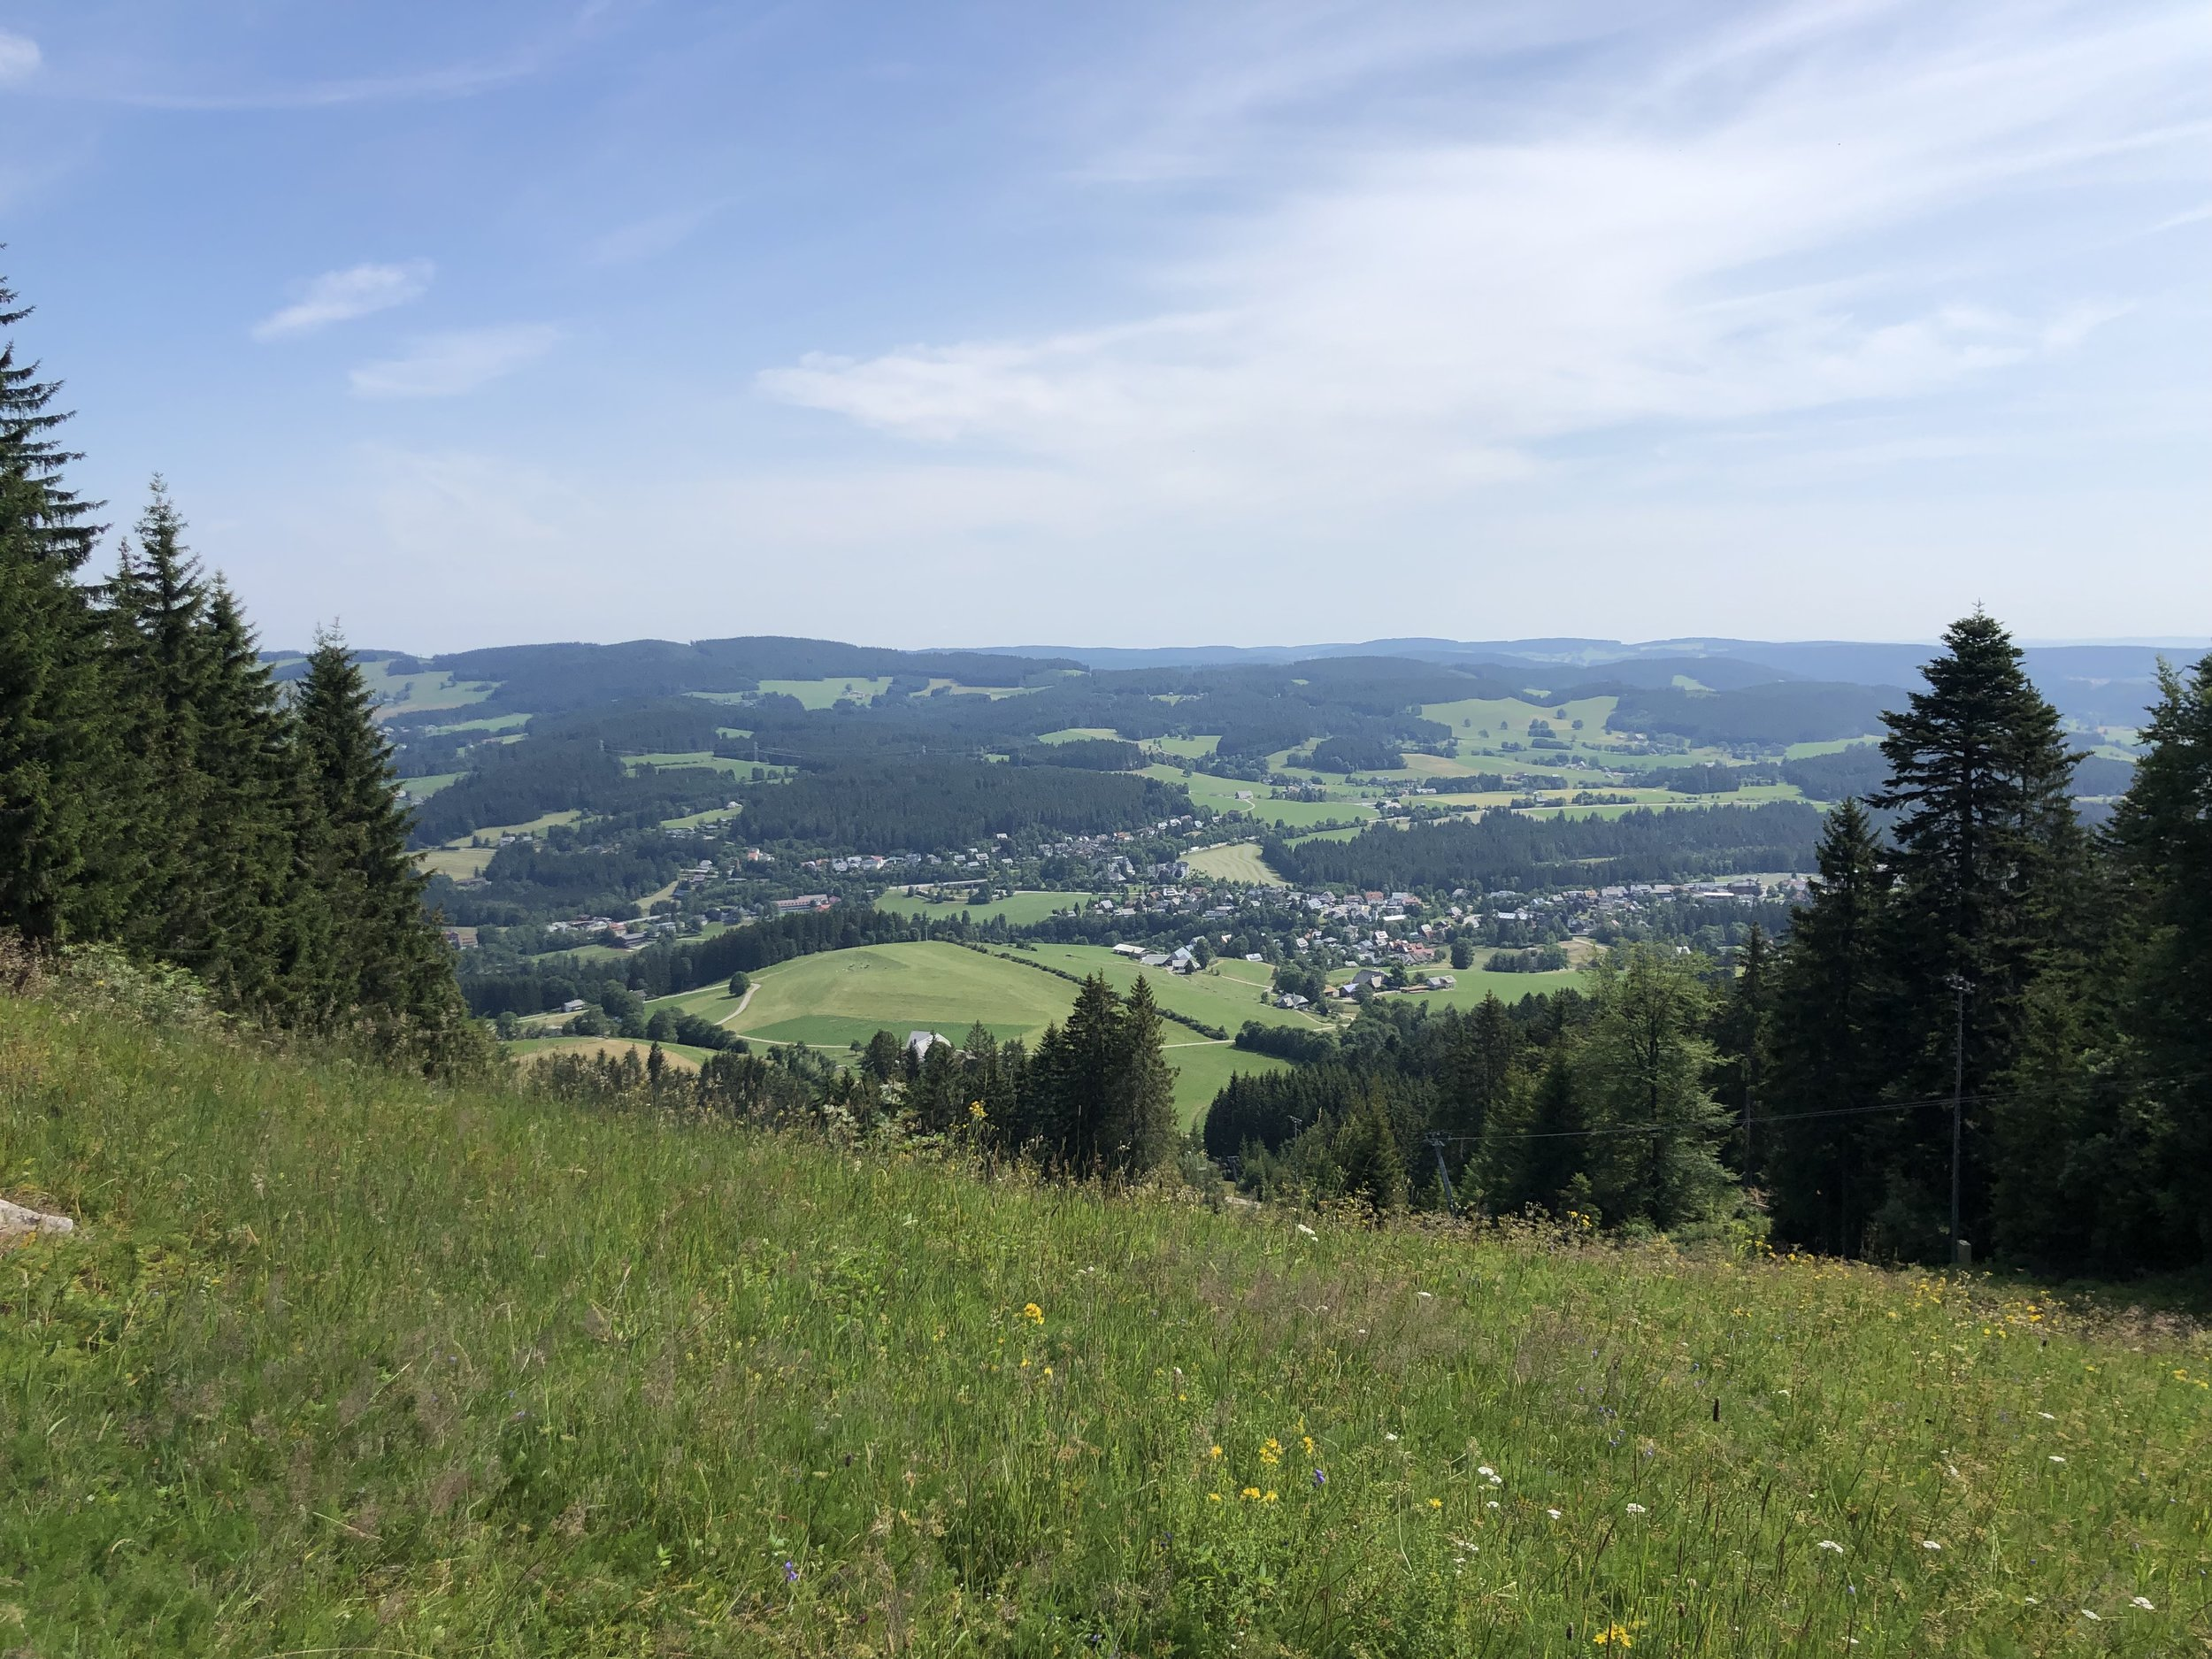 One of the many awesome views during our hike in the Black Forest region.